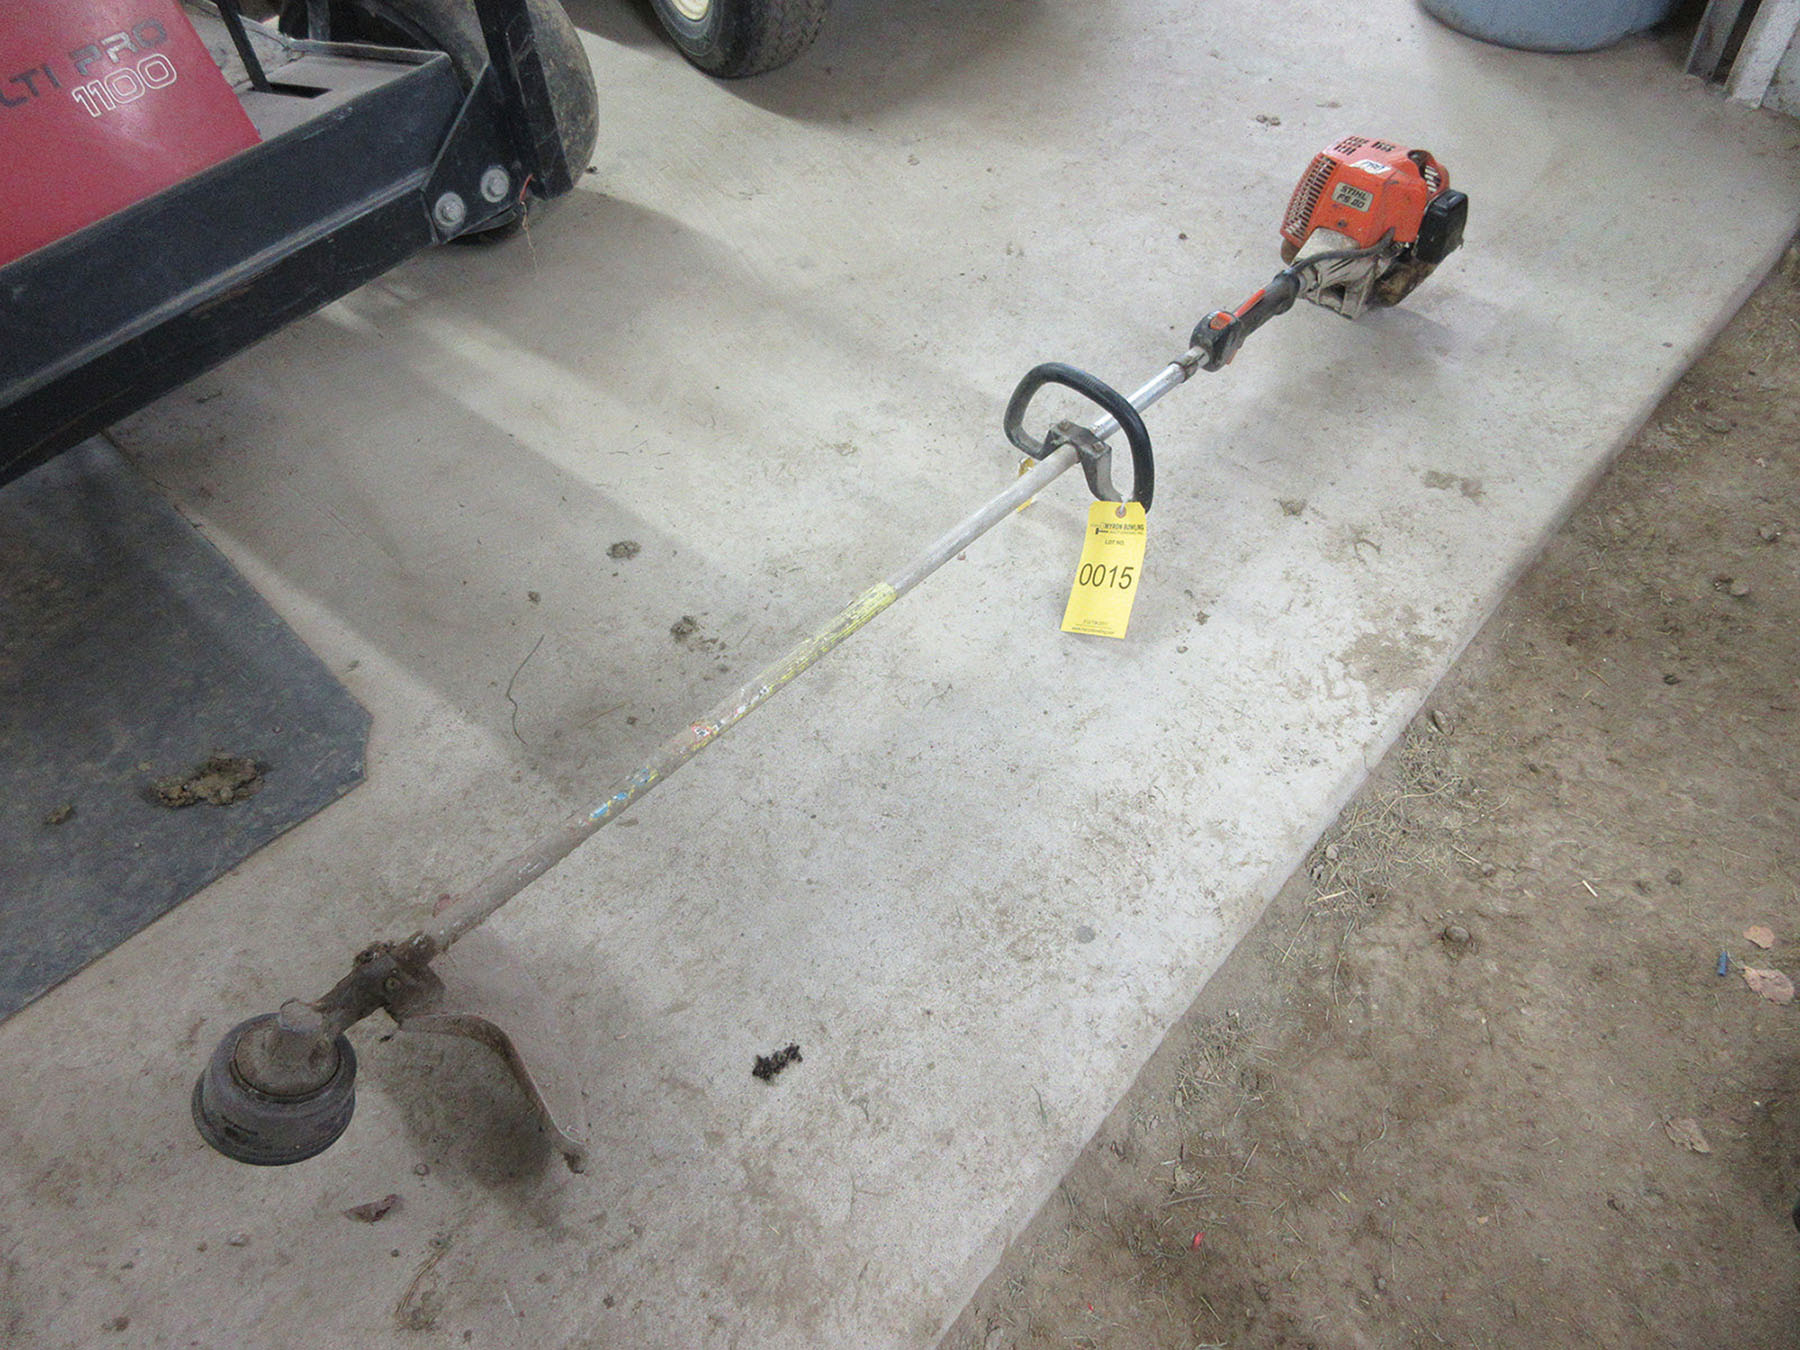 Lot 15 - STIHL FS-80 WEED EATER